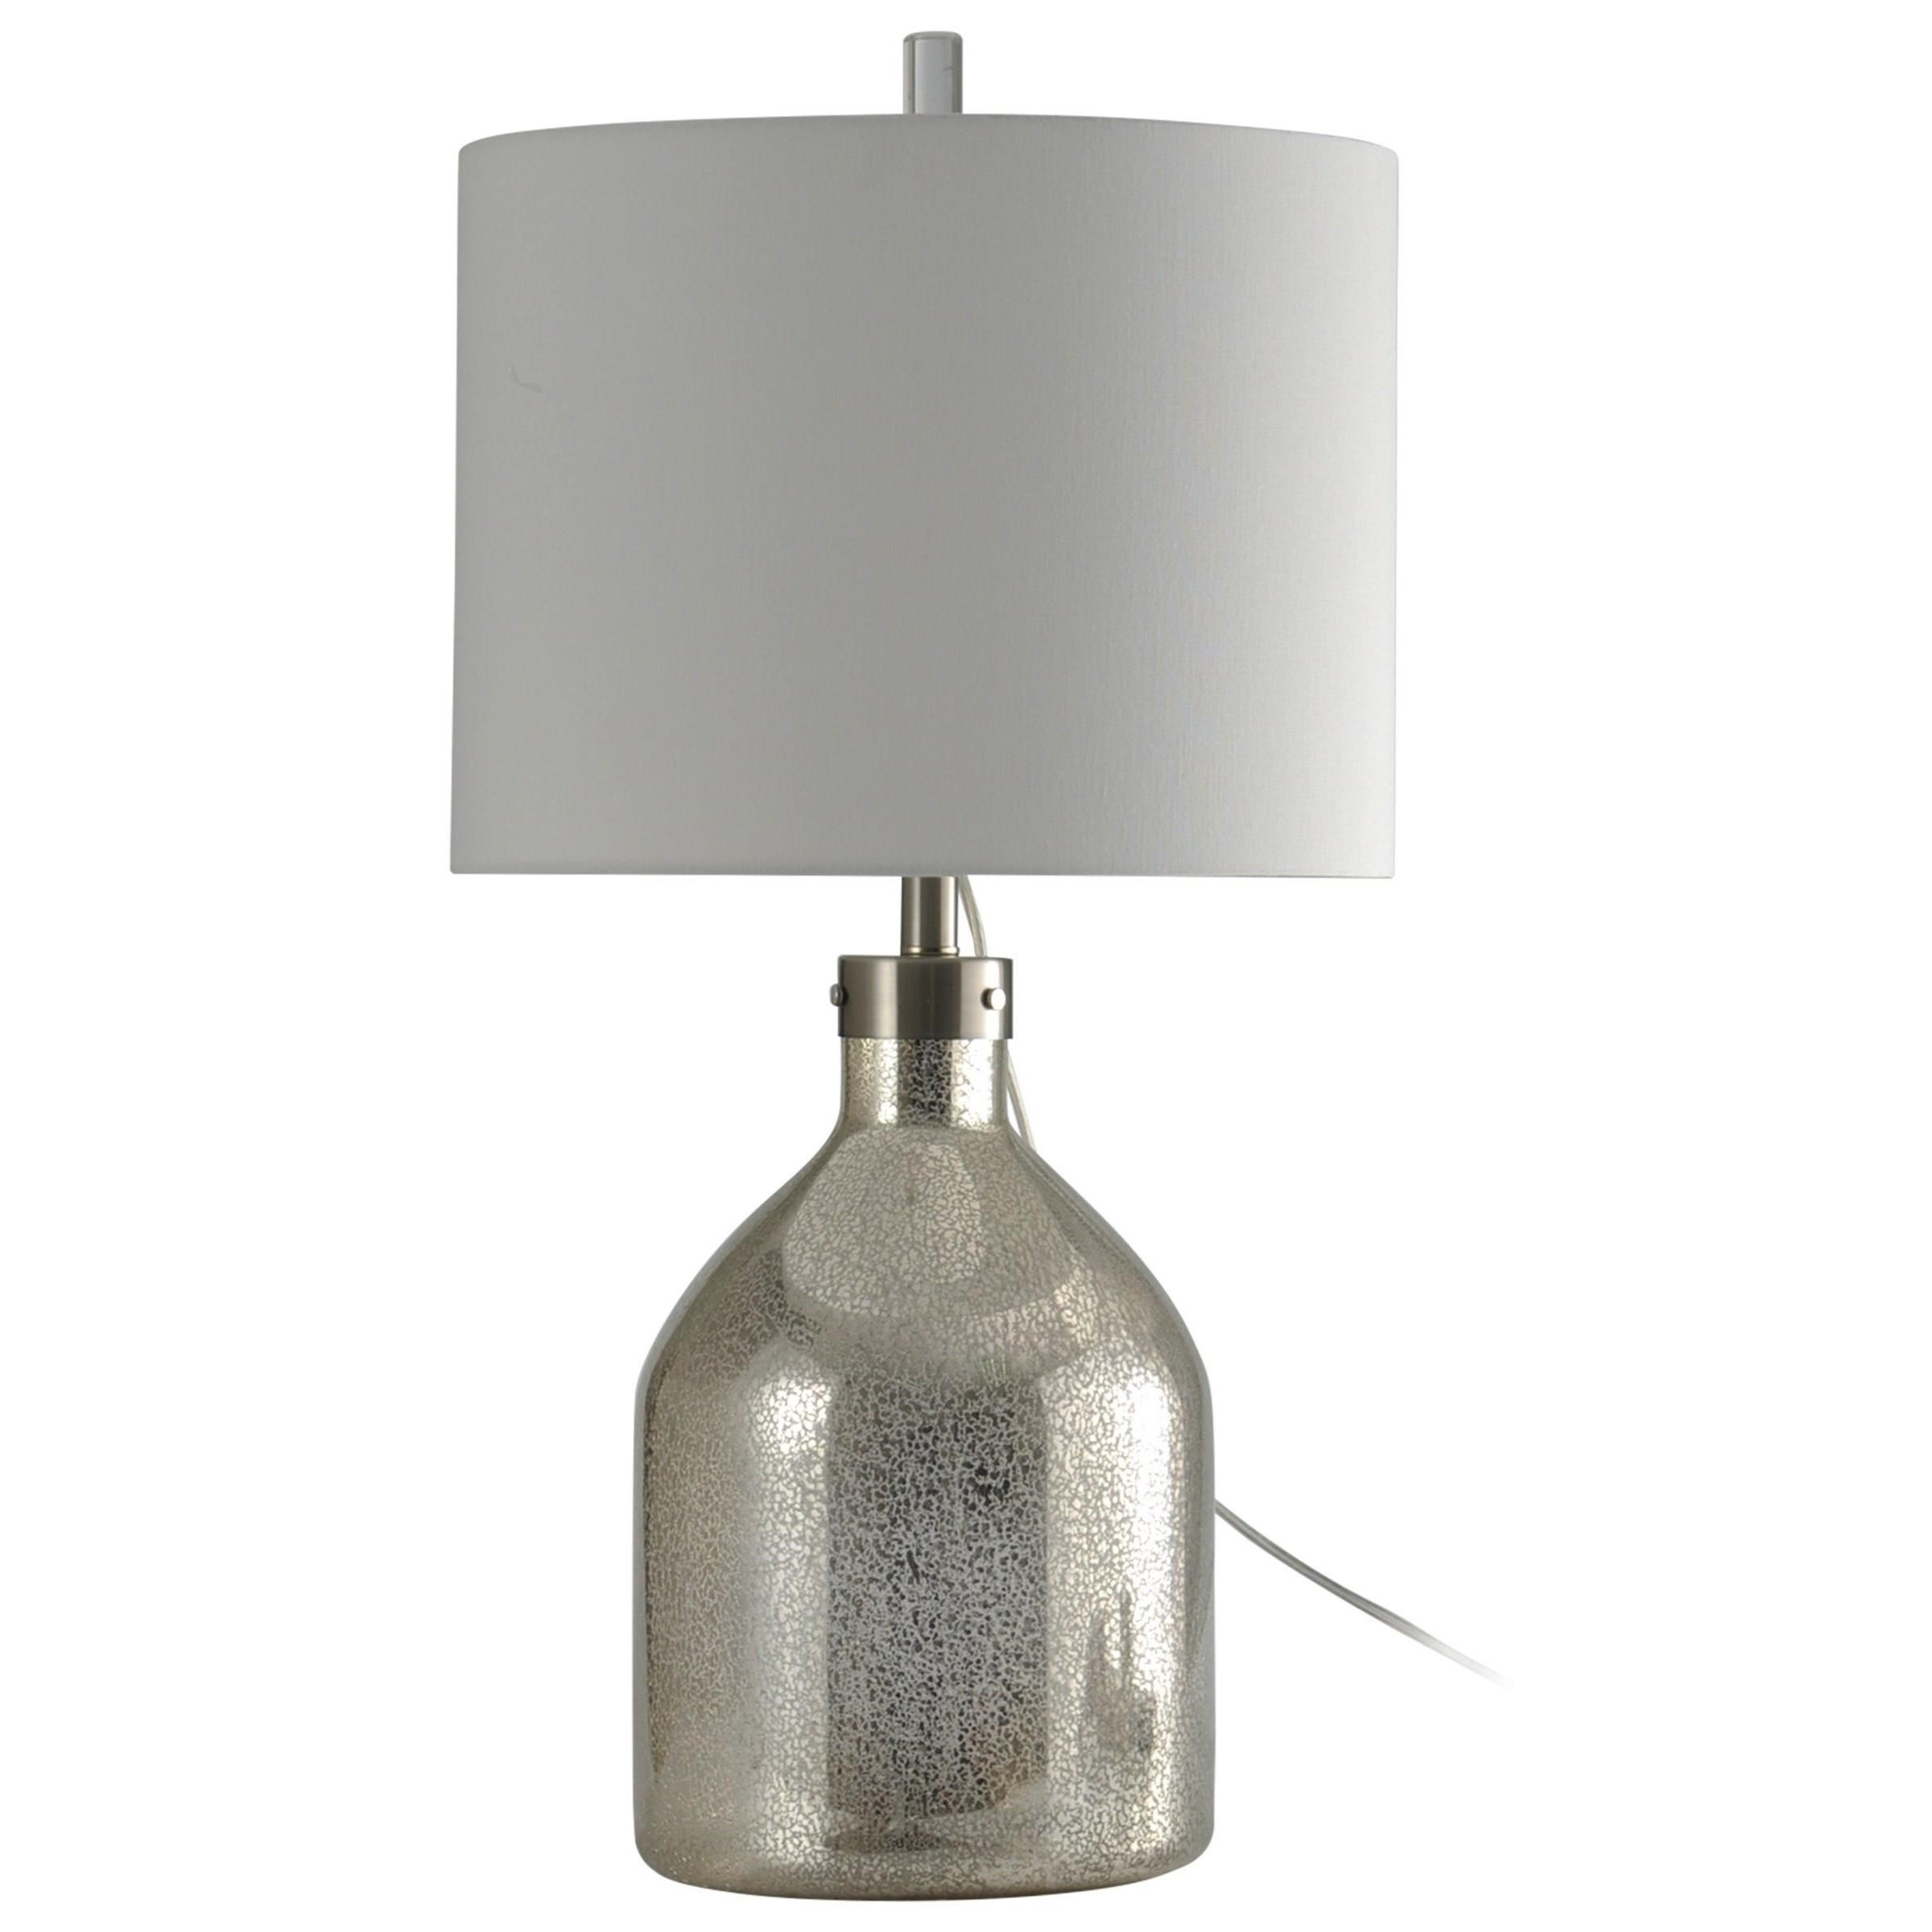 Lamps Mercury Glass Table Lamp by StyleCraft at Wilcox Furniture